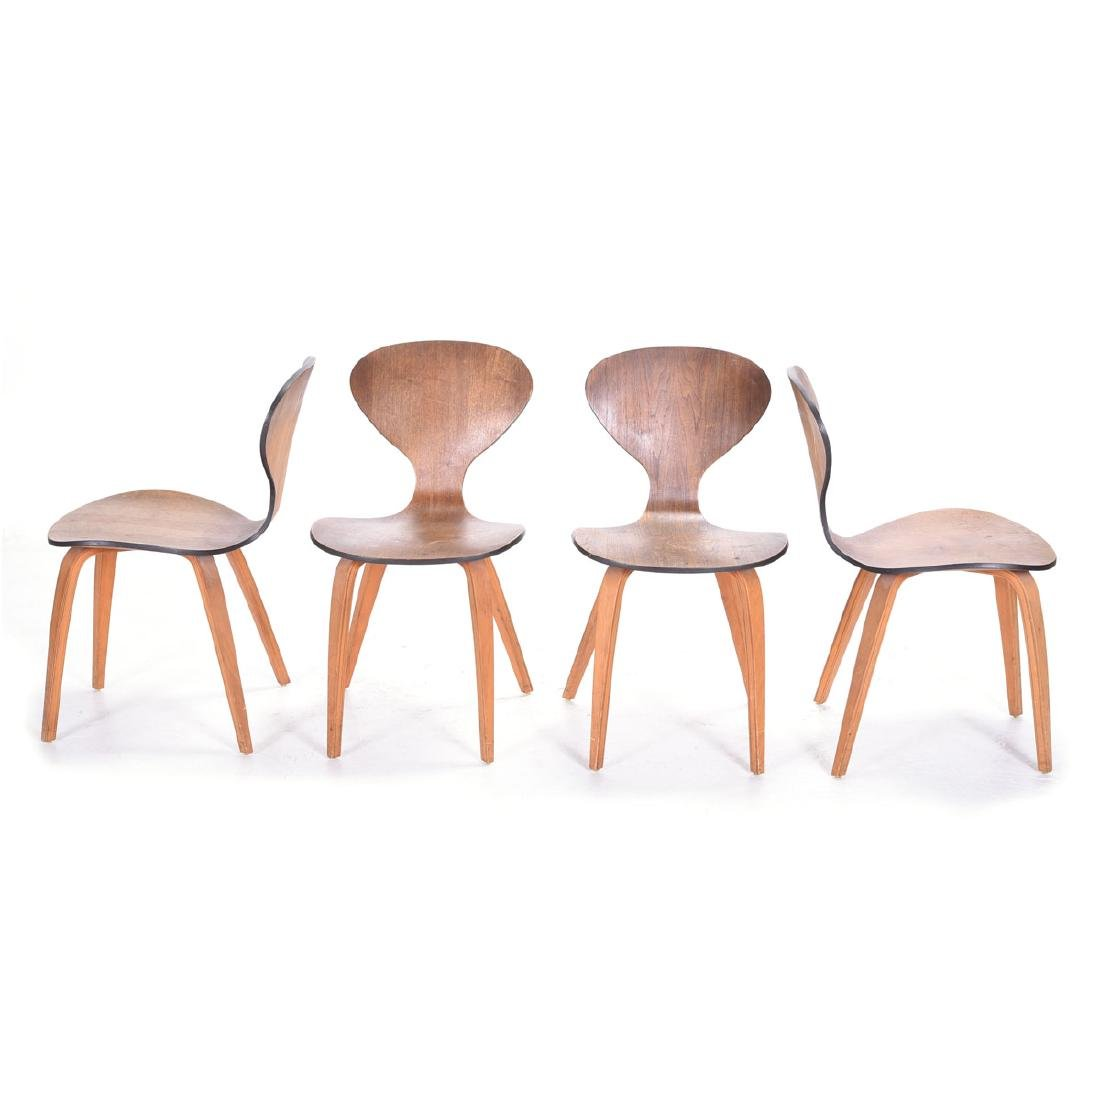 Four Arne Jacobsen Series Seven Chairs.